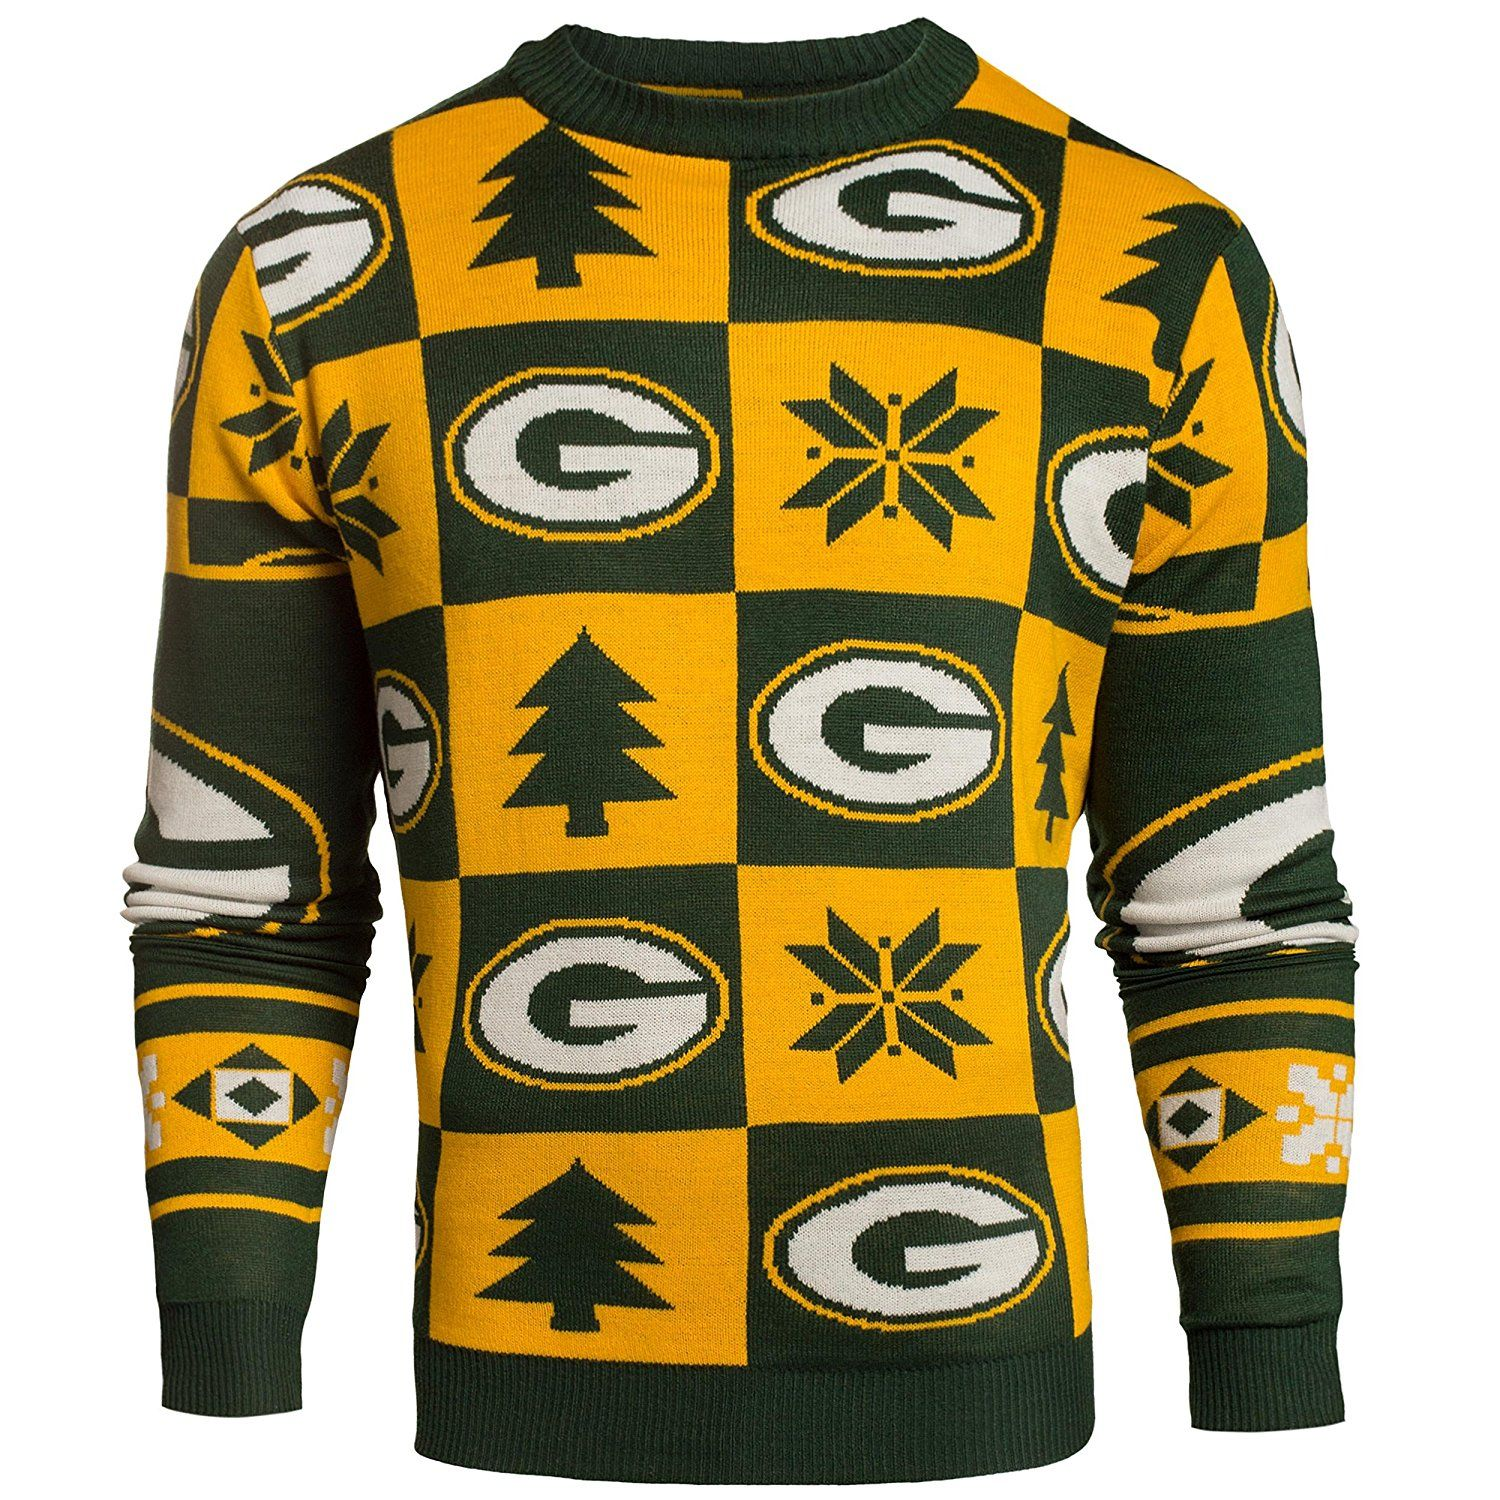 Pin On Nfl Teams Ugly Christmas Sweaters